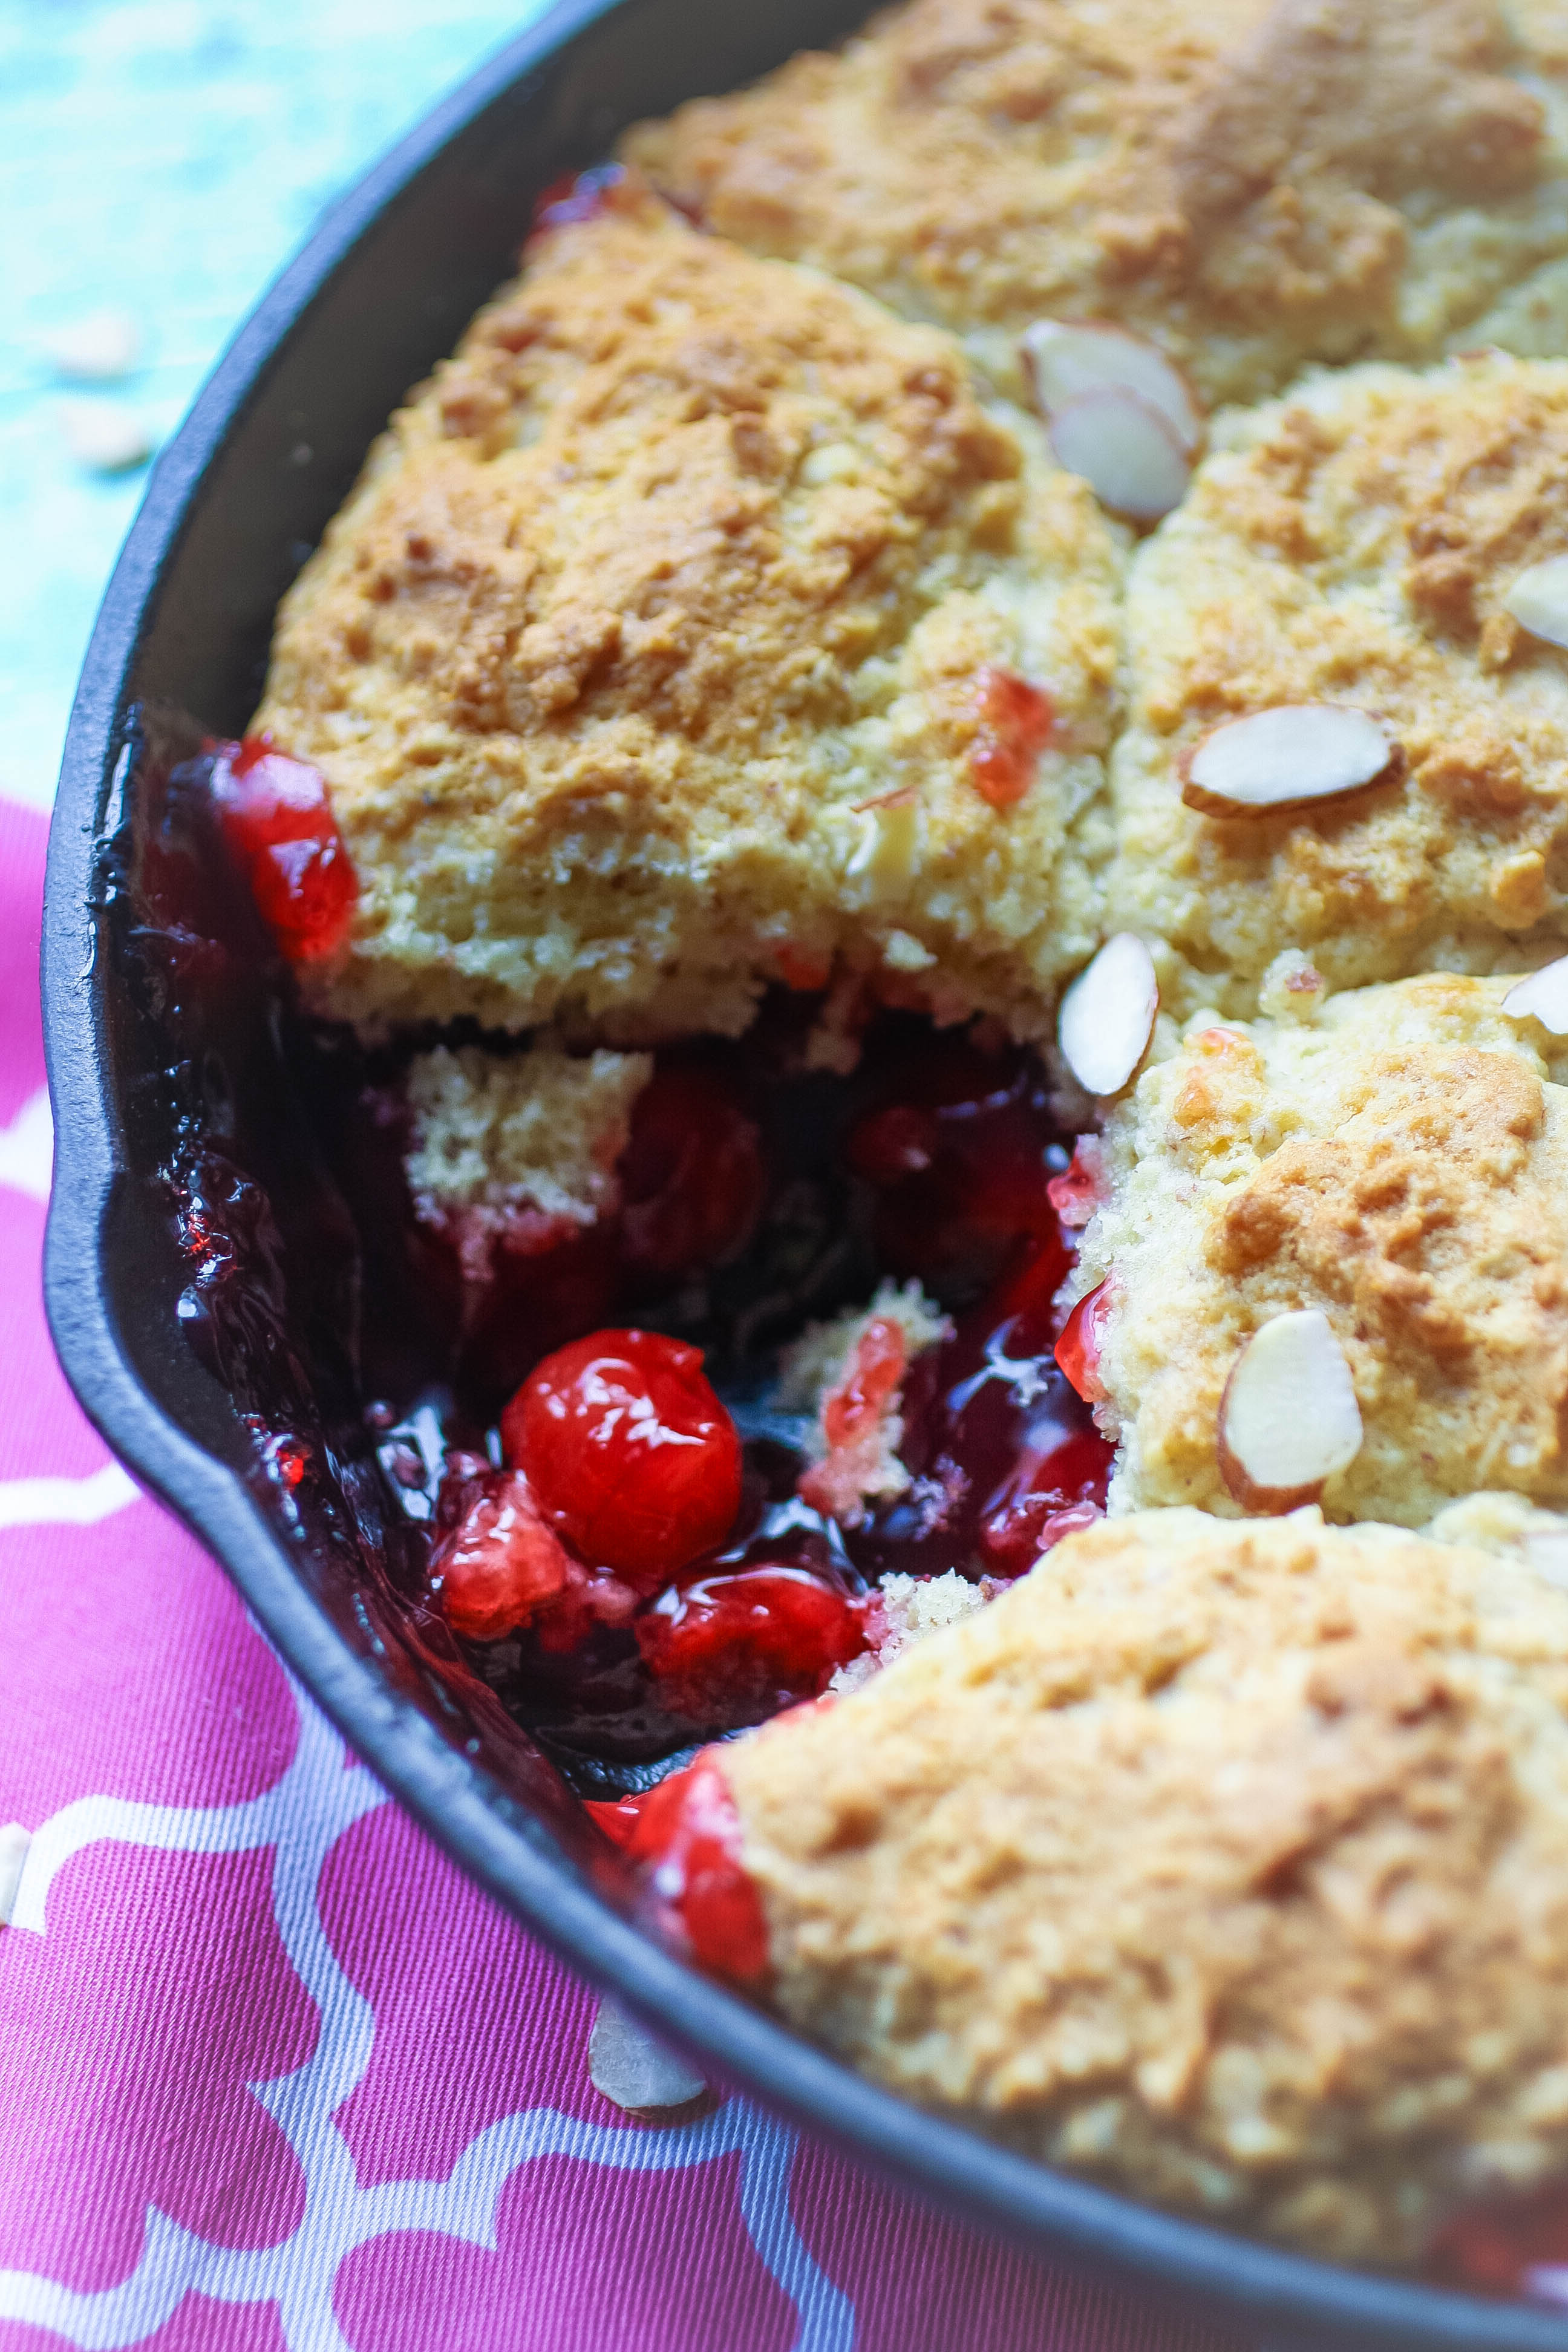 Cherry-Almond Skillet Cobbler makes a fun dessert. You'll enjoy Cherry-Almond Skillet Cobbler as a treat anytime.